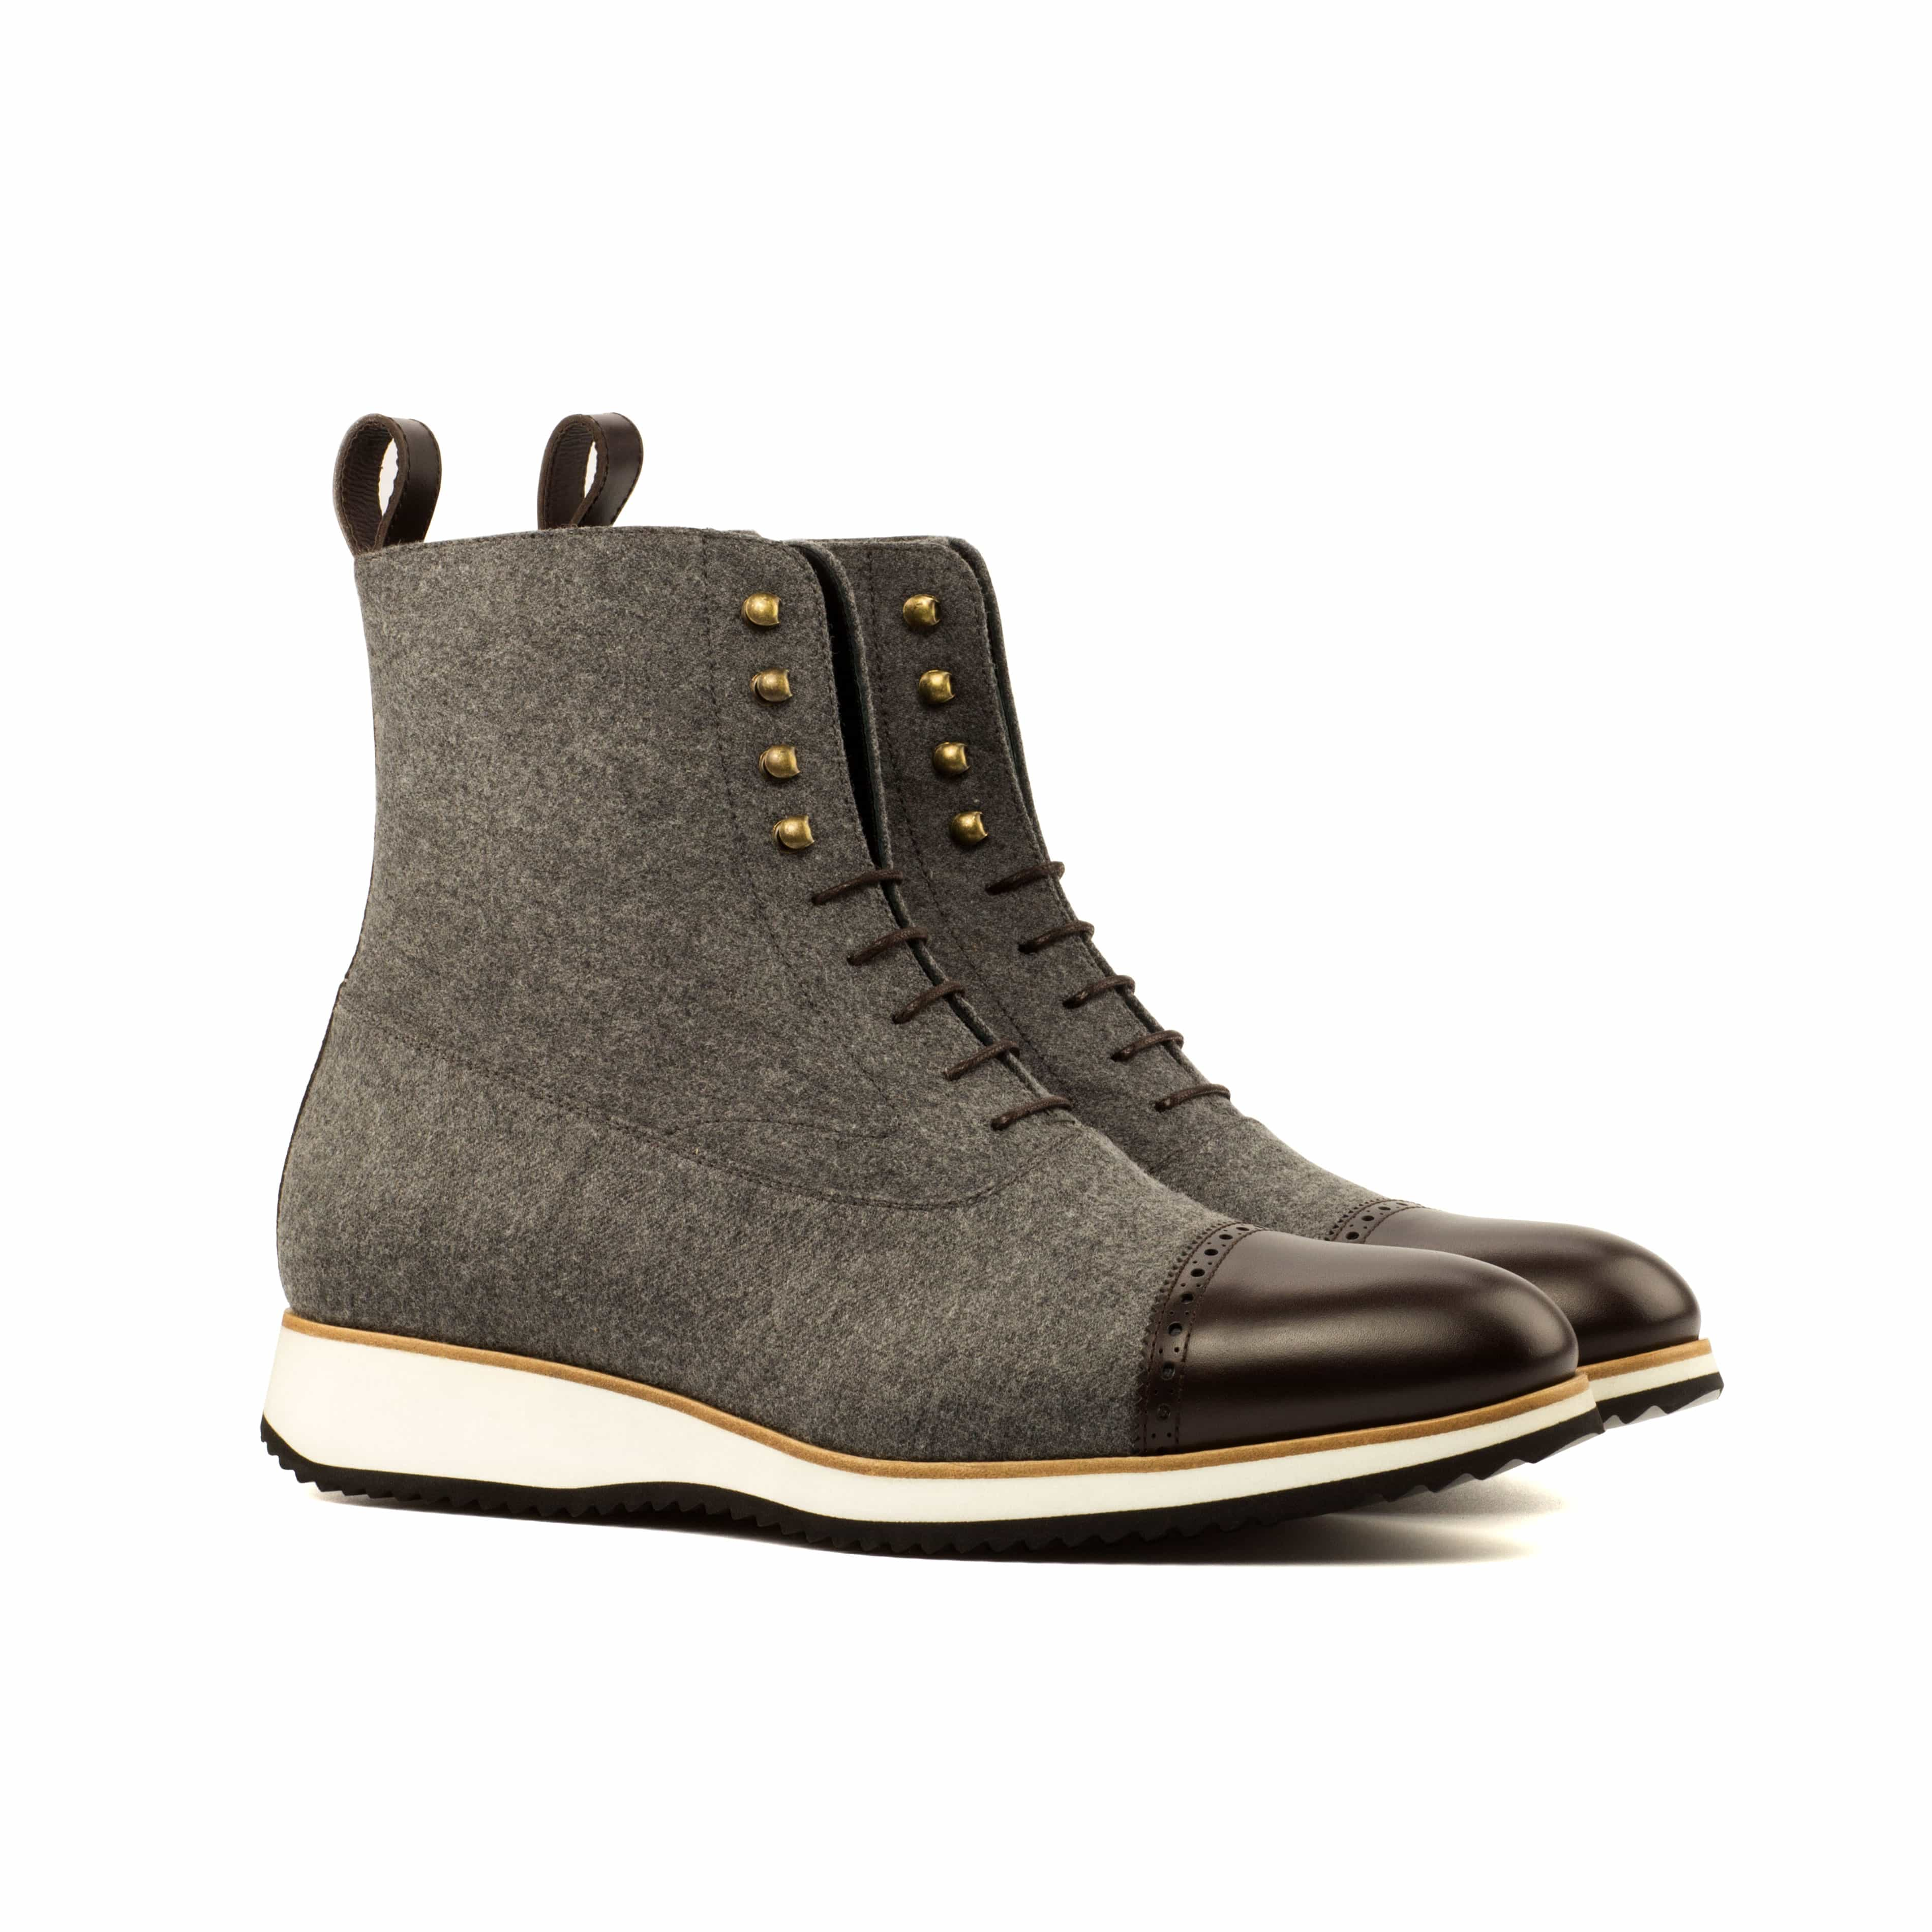 Balmoral Boot - Runner Grey Flannel & Brown Calf - Kicks For Gents - Boots -